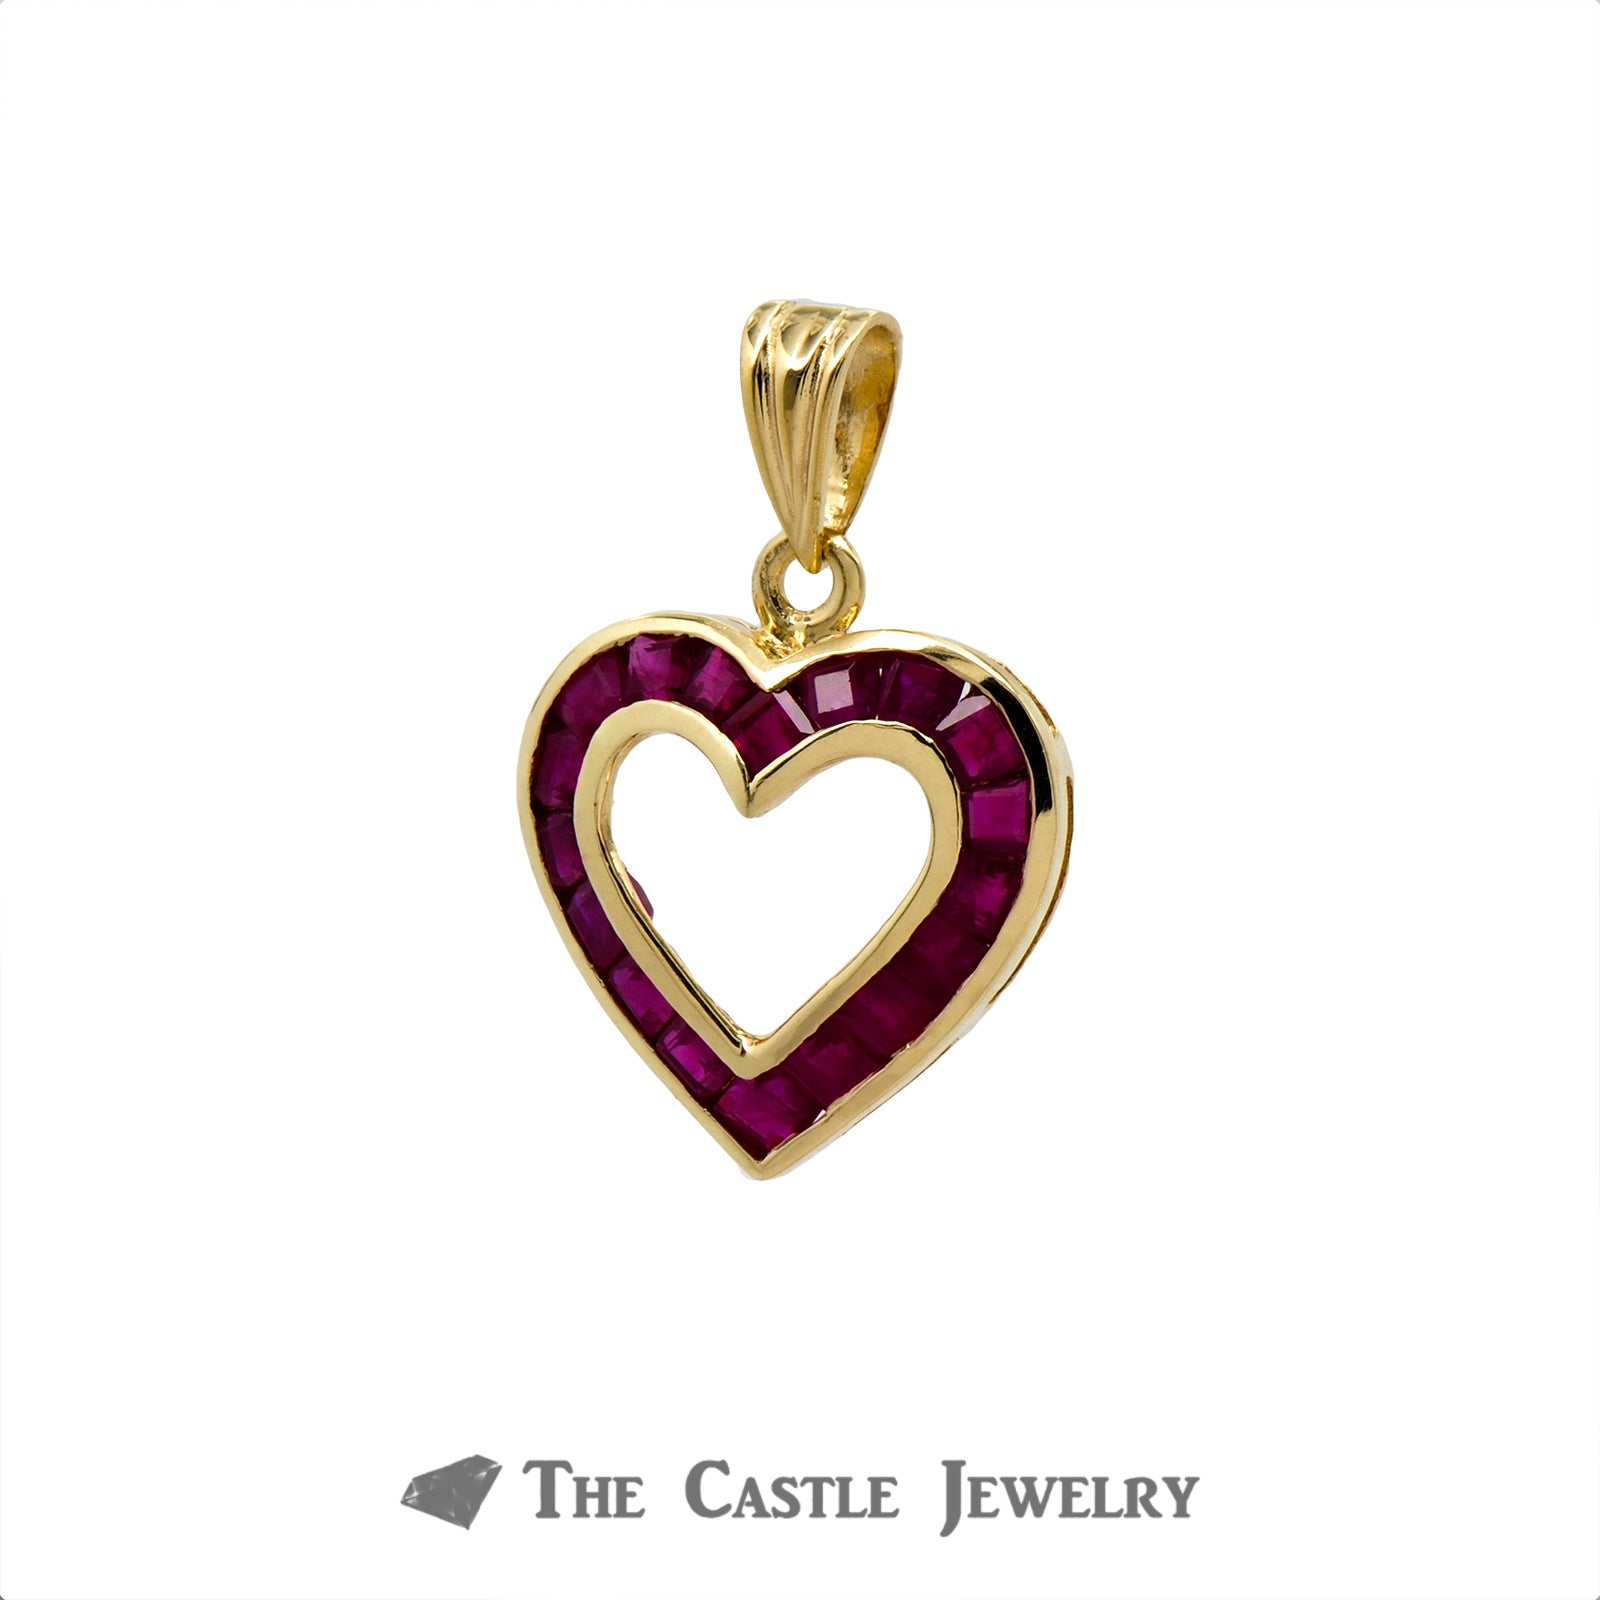 Heart Shaped Pendant with Channel Set Princess Cut Rubies in 14k Yellow Gold-1